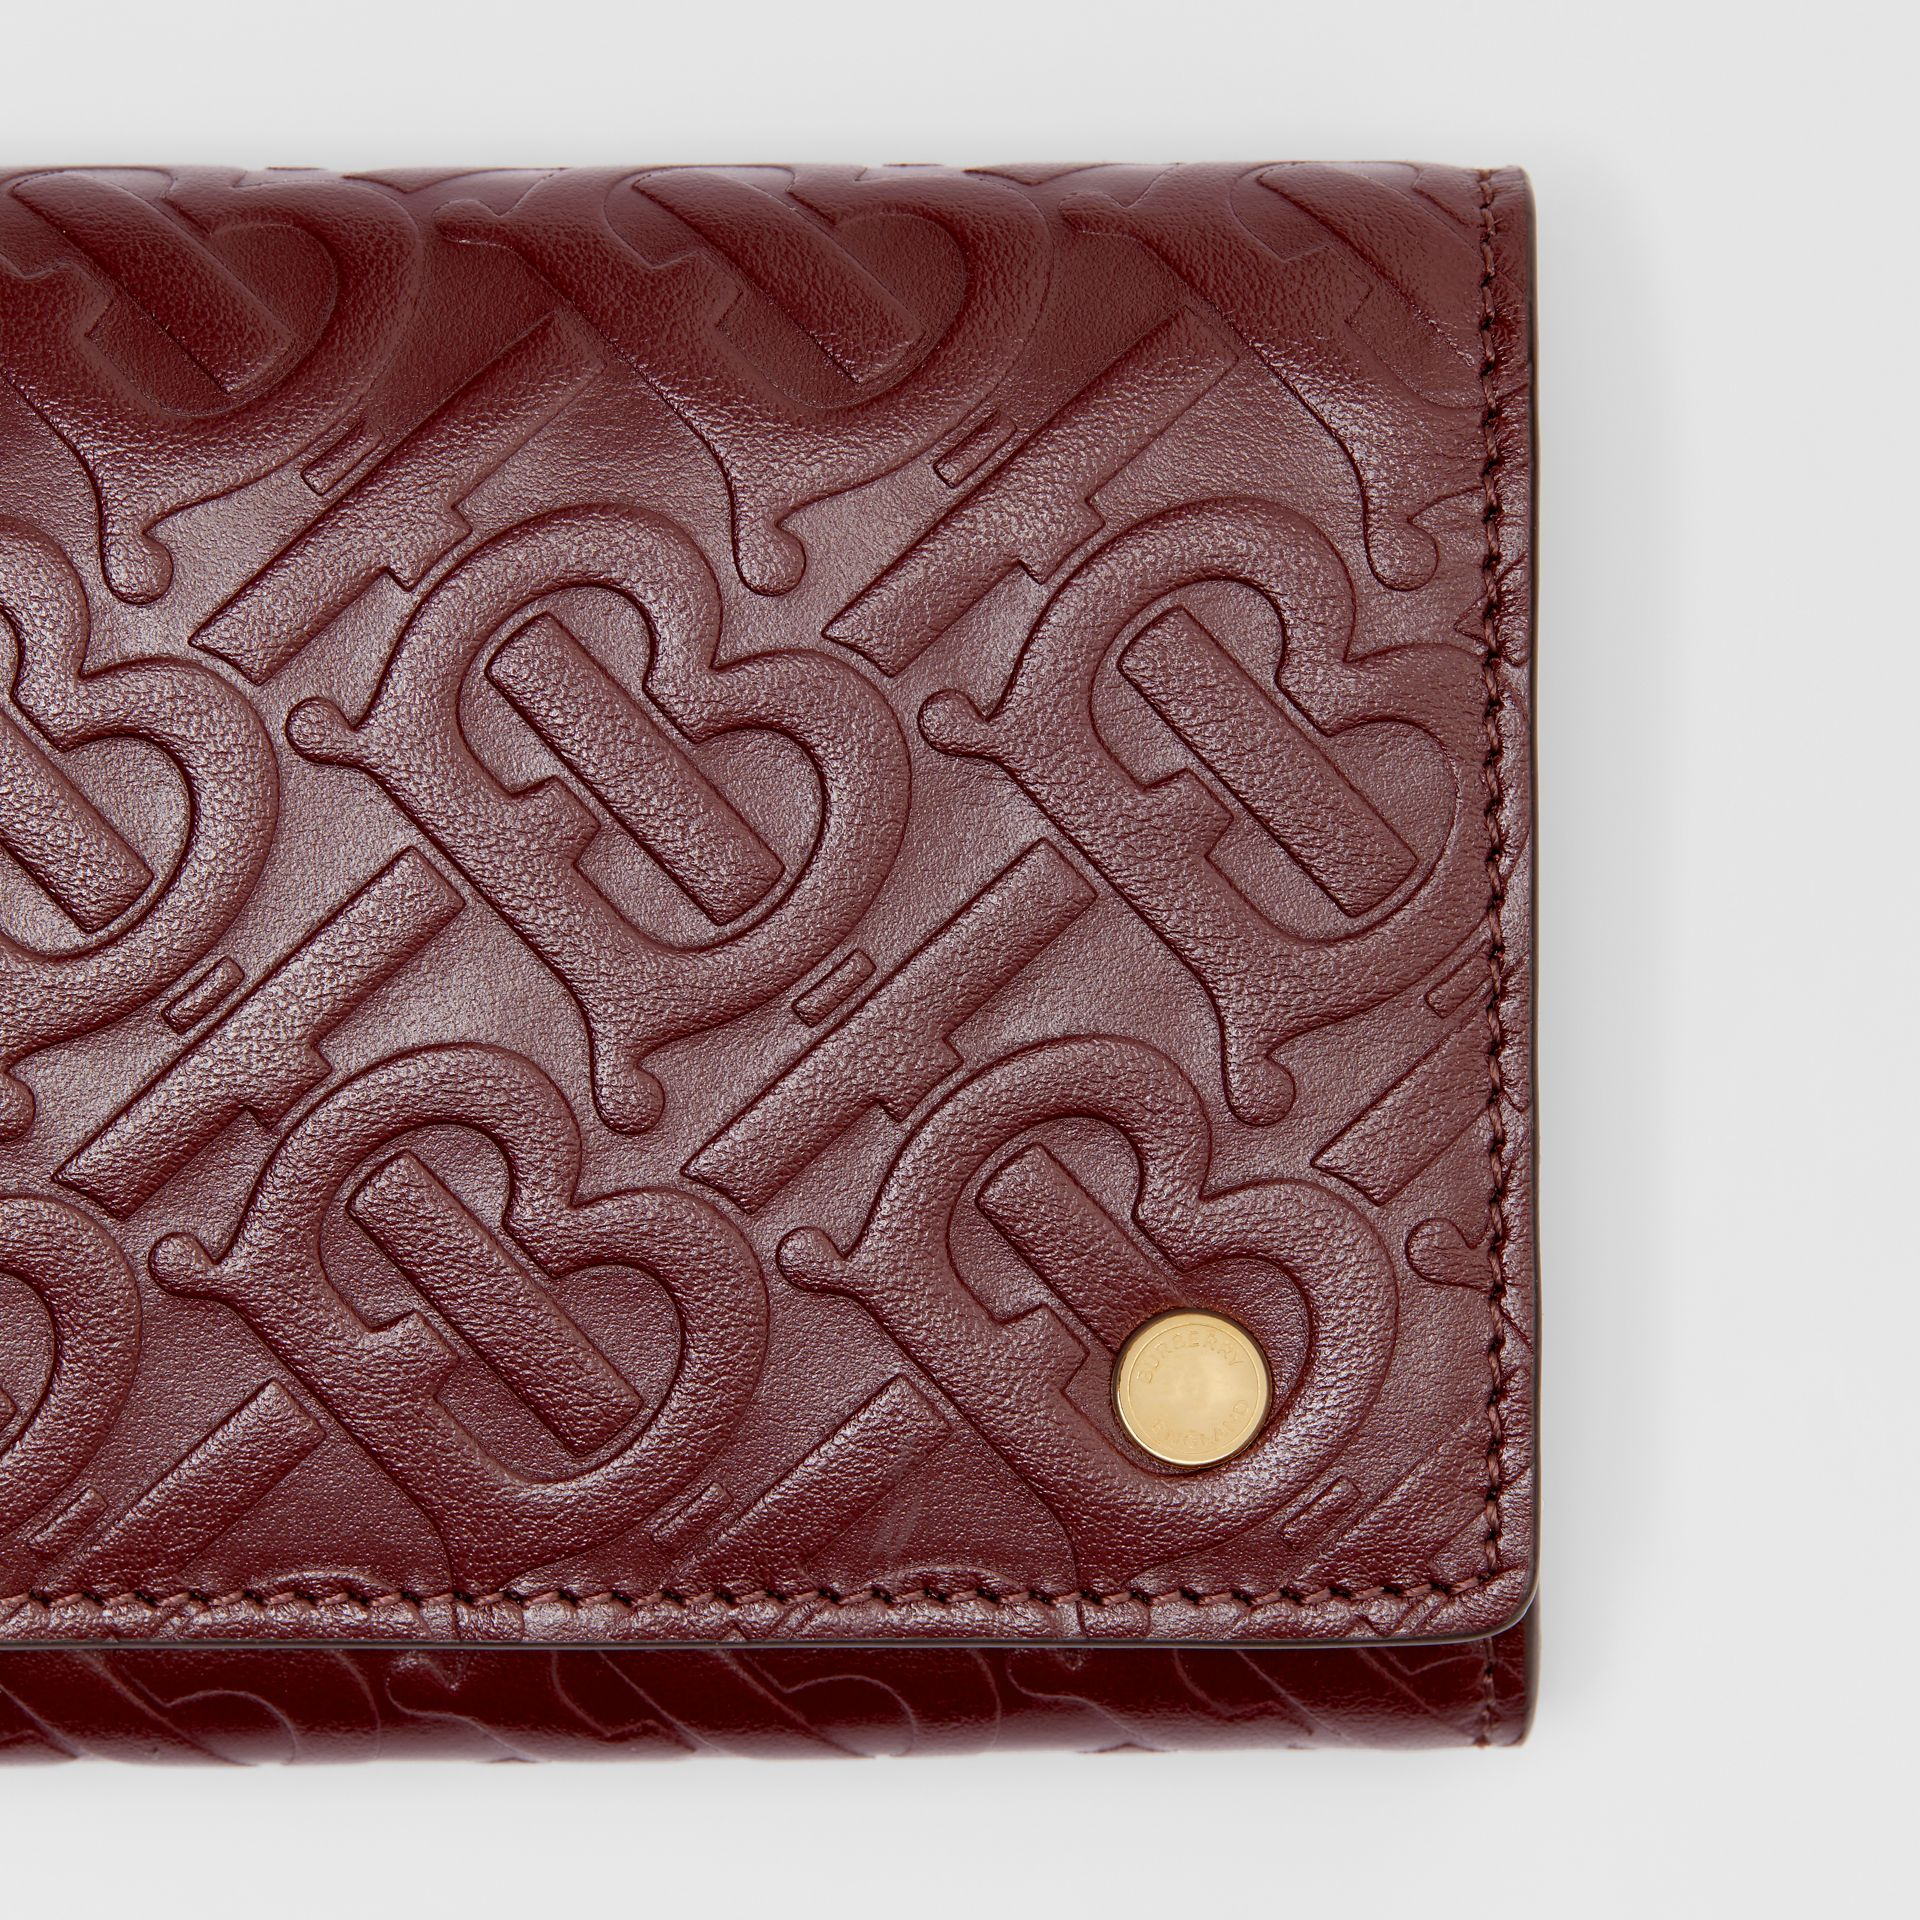 Portefeuille continental en cuir Monogram (Oxblood) - Femme | Burberry - photo de la galerie 1